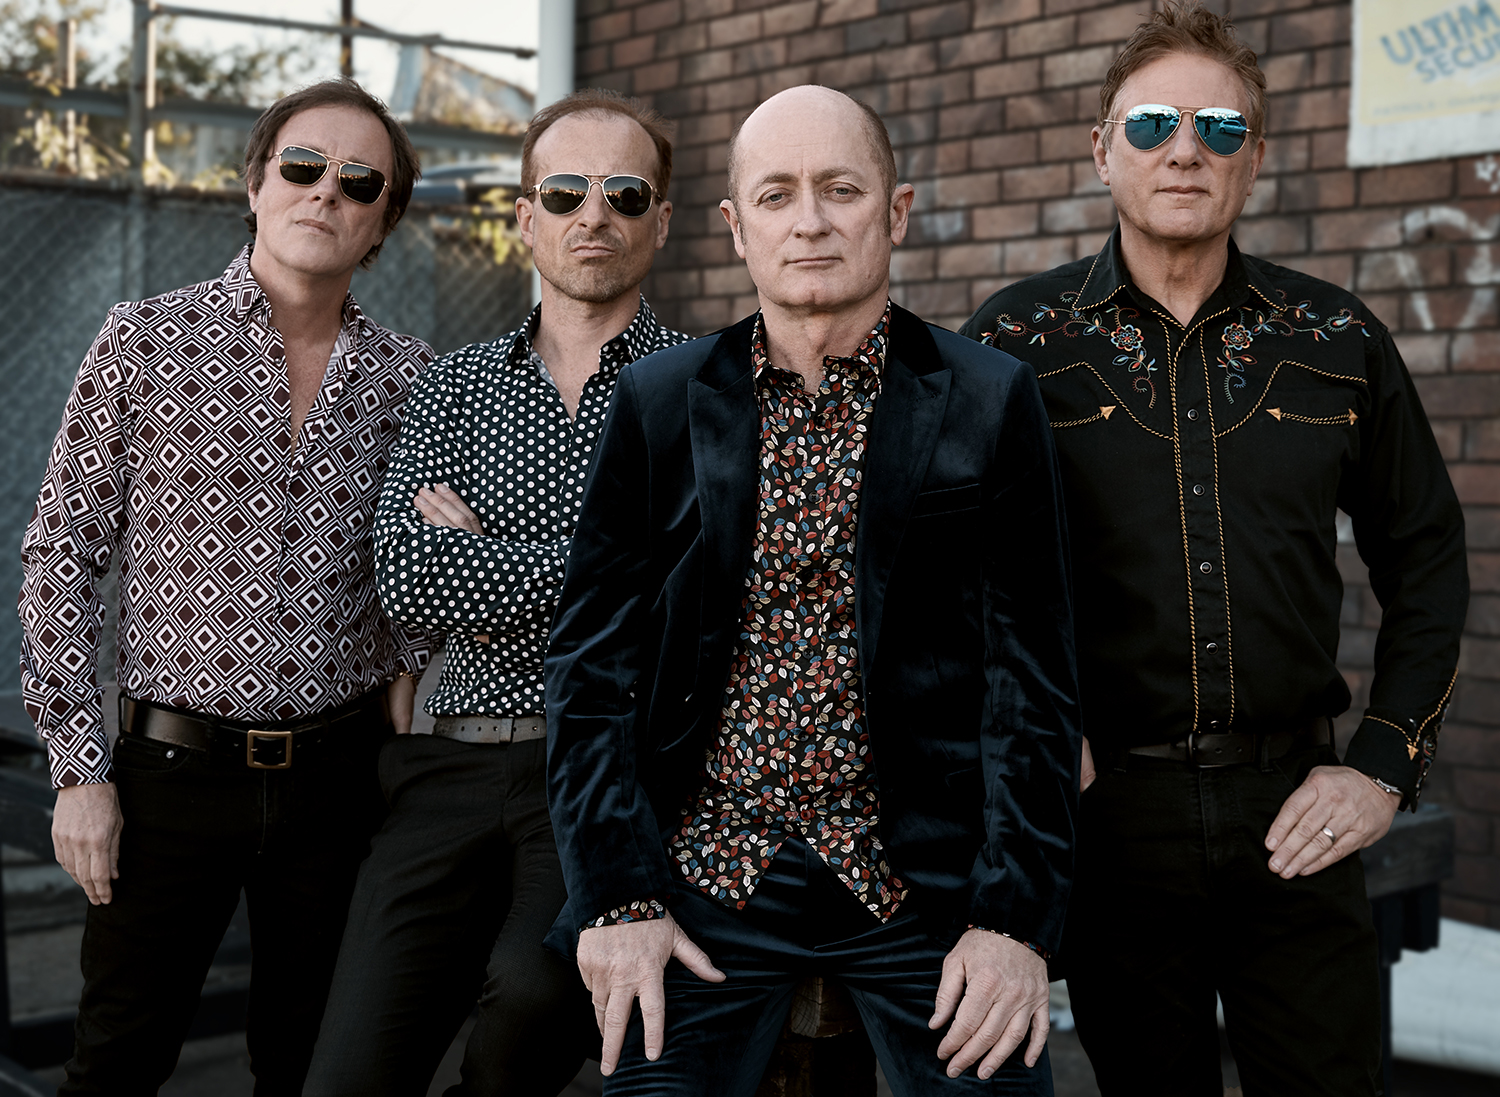 Hoodoo Gurus Announce 40th Anniversary Tour With Special Guests The Dandy Warhols